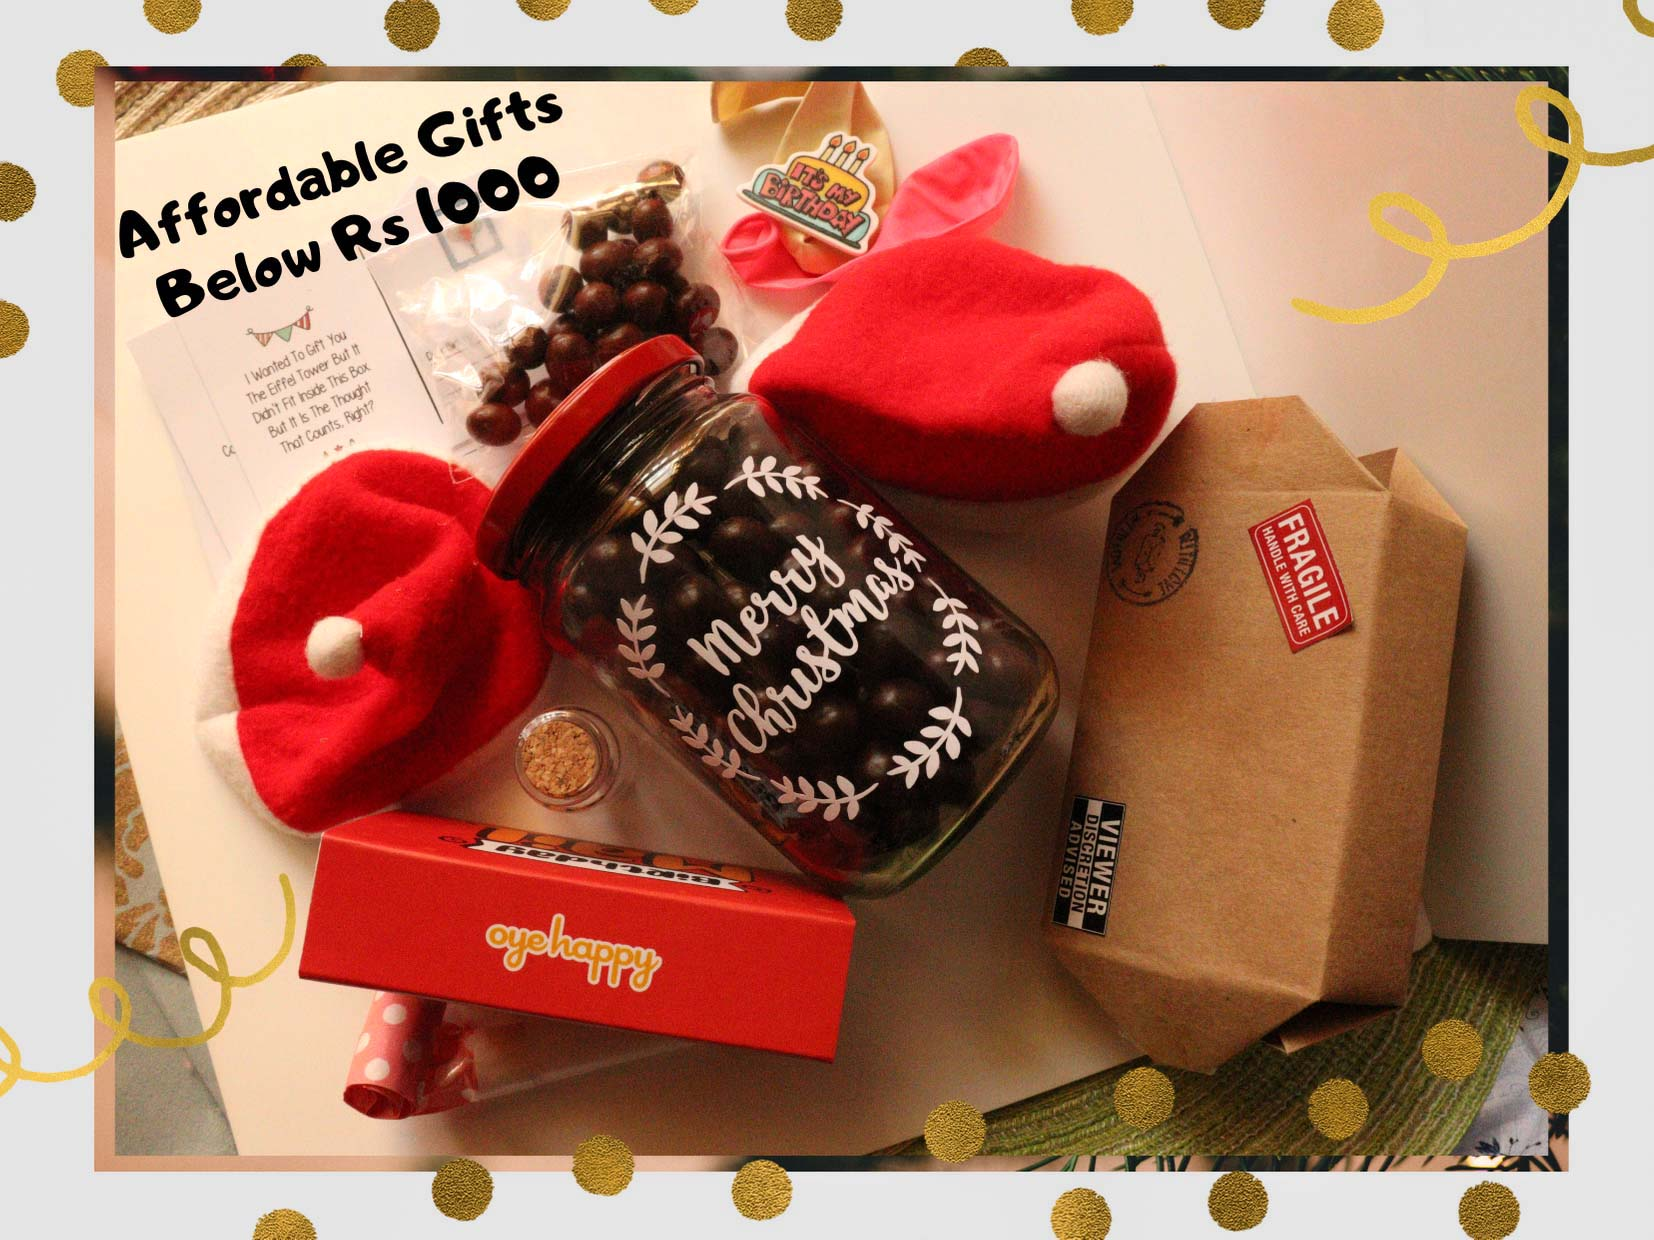 Pick Affordable Gifts Below Rs. 1000